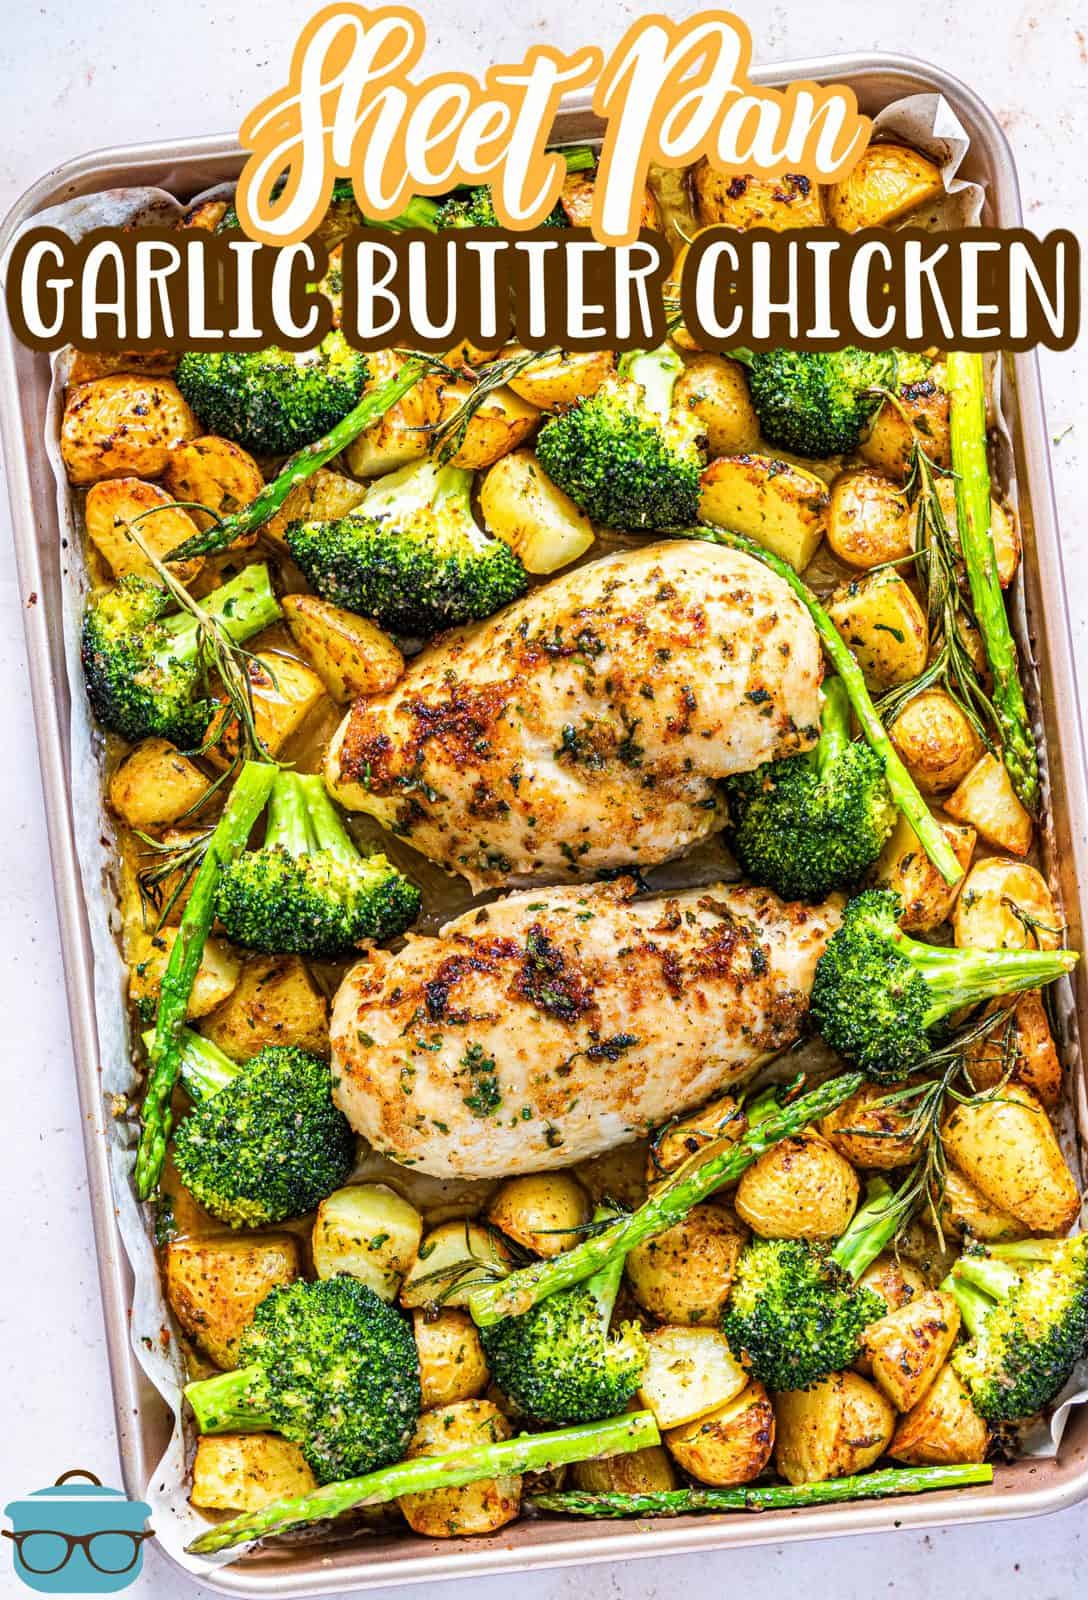 Pinterest image of Sheet Pan Garlic Butter Chicken uncut surounded by vegetables.